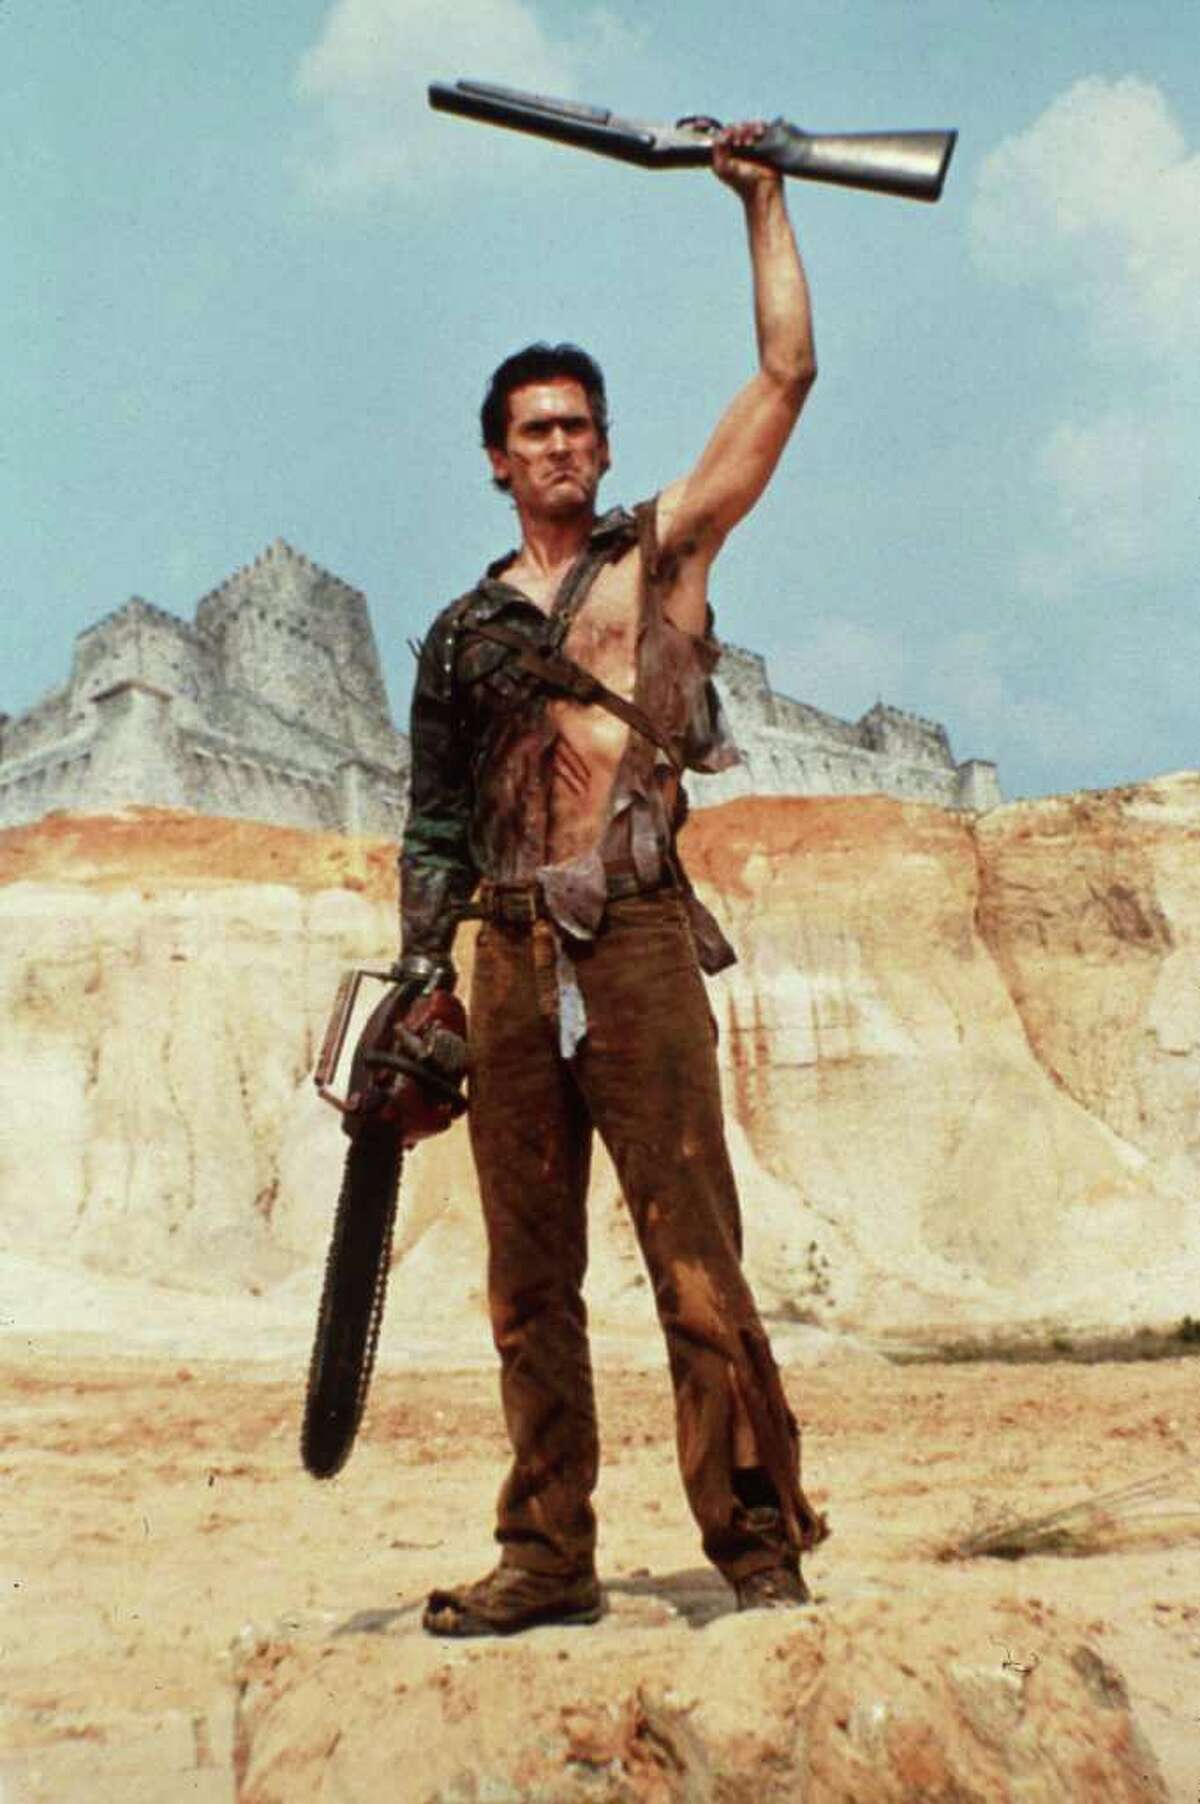 """EVIL DEAD 2 -- Bruce Campbell starred in the 1987 film Evil Dead II. HOUCHRON CAPTION (07/02/2005) SECSTAR COLOR: VIOLENT SIDE: Actor Bruce Campbell is well-armed in a scene from the 1987 film """"Evil Dead II."""""""